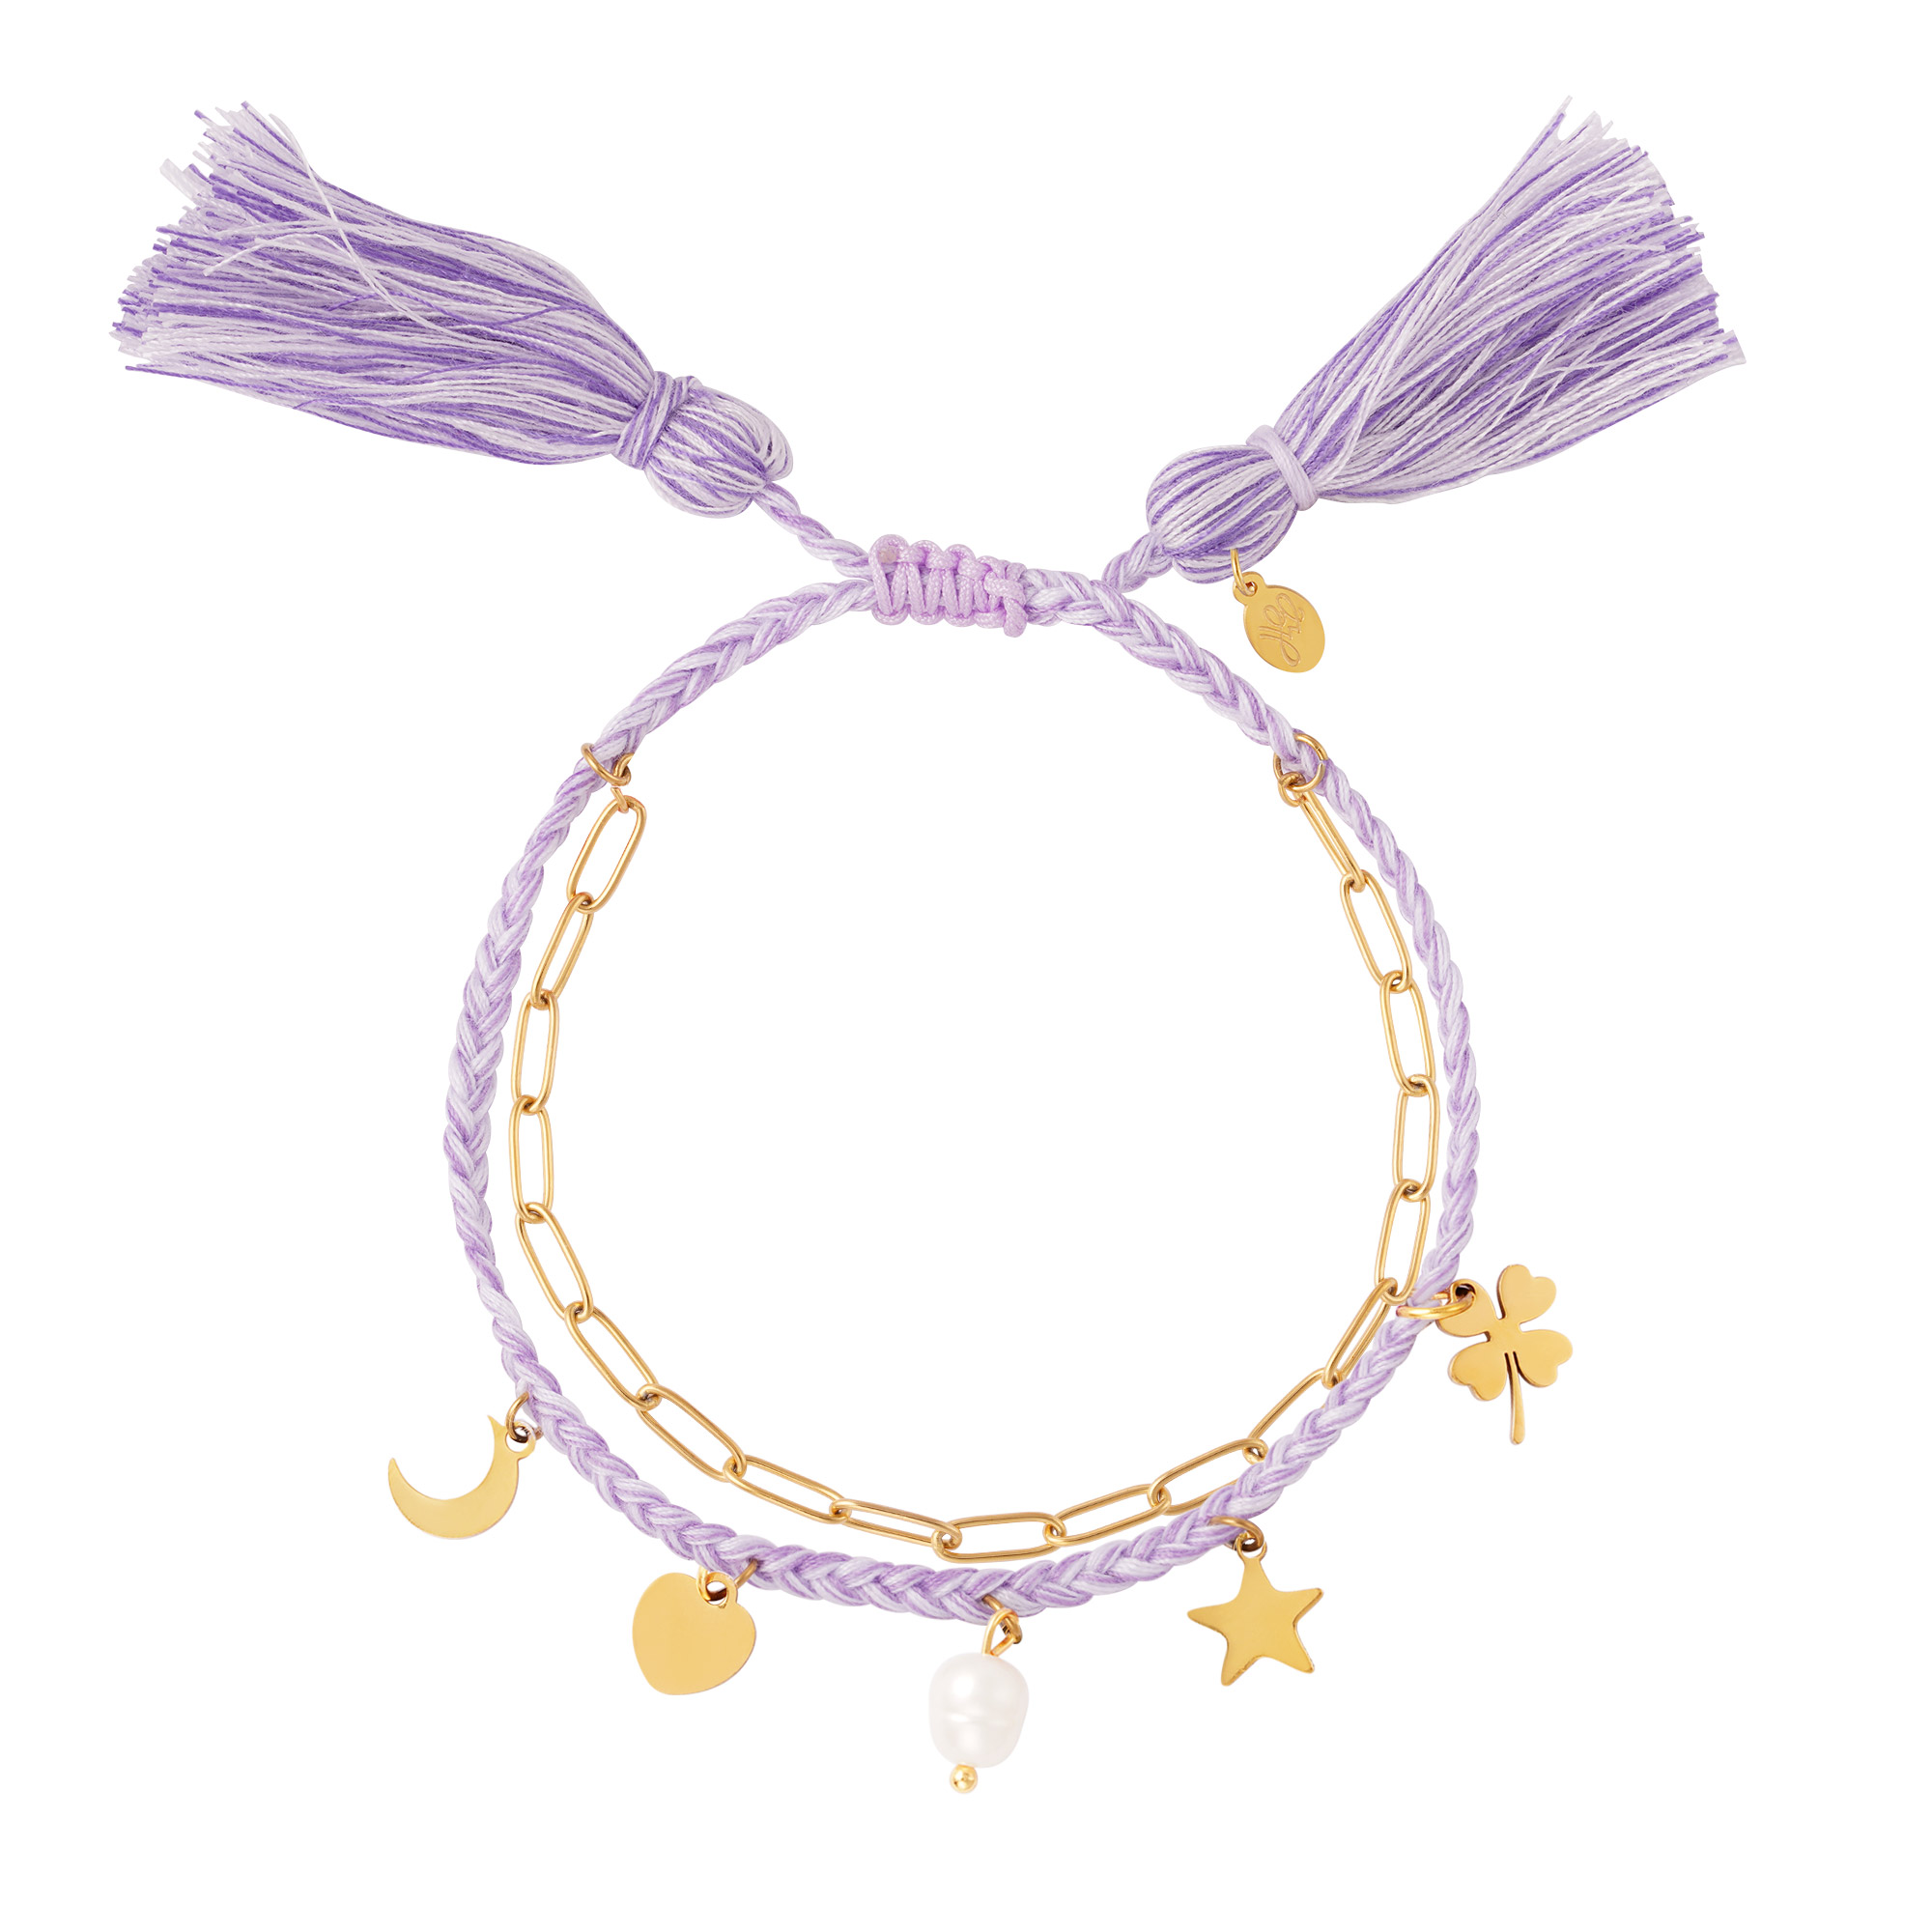 Double bracelet with charms